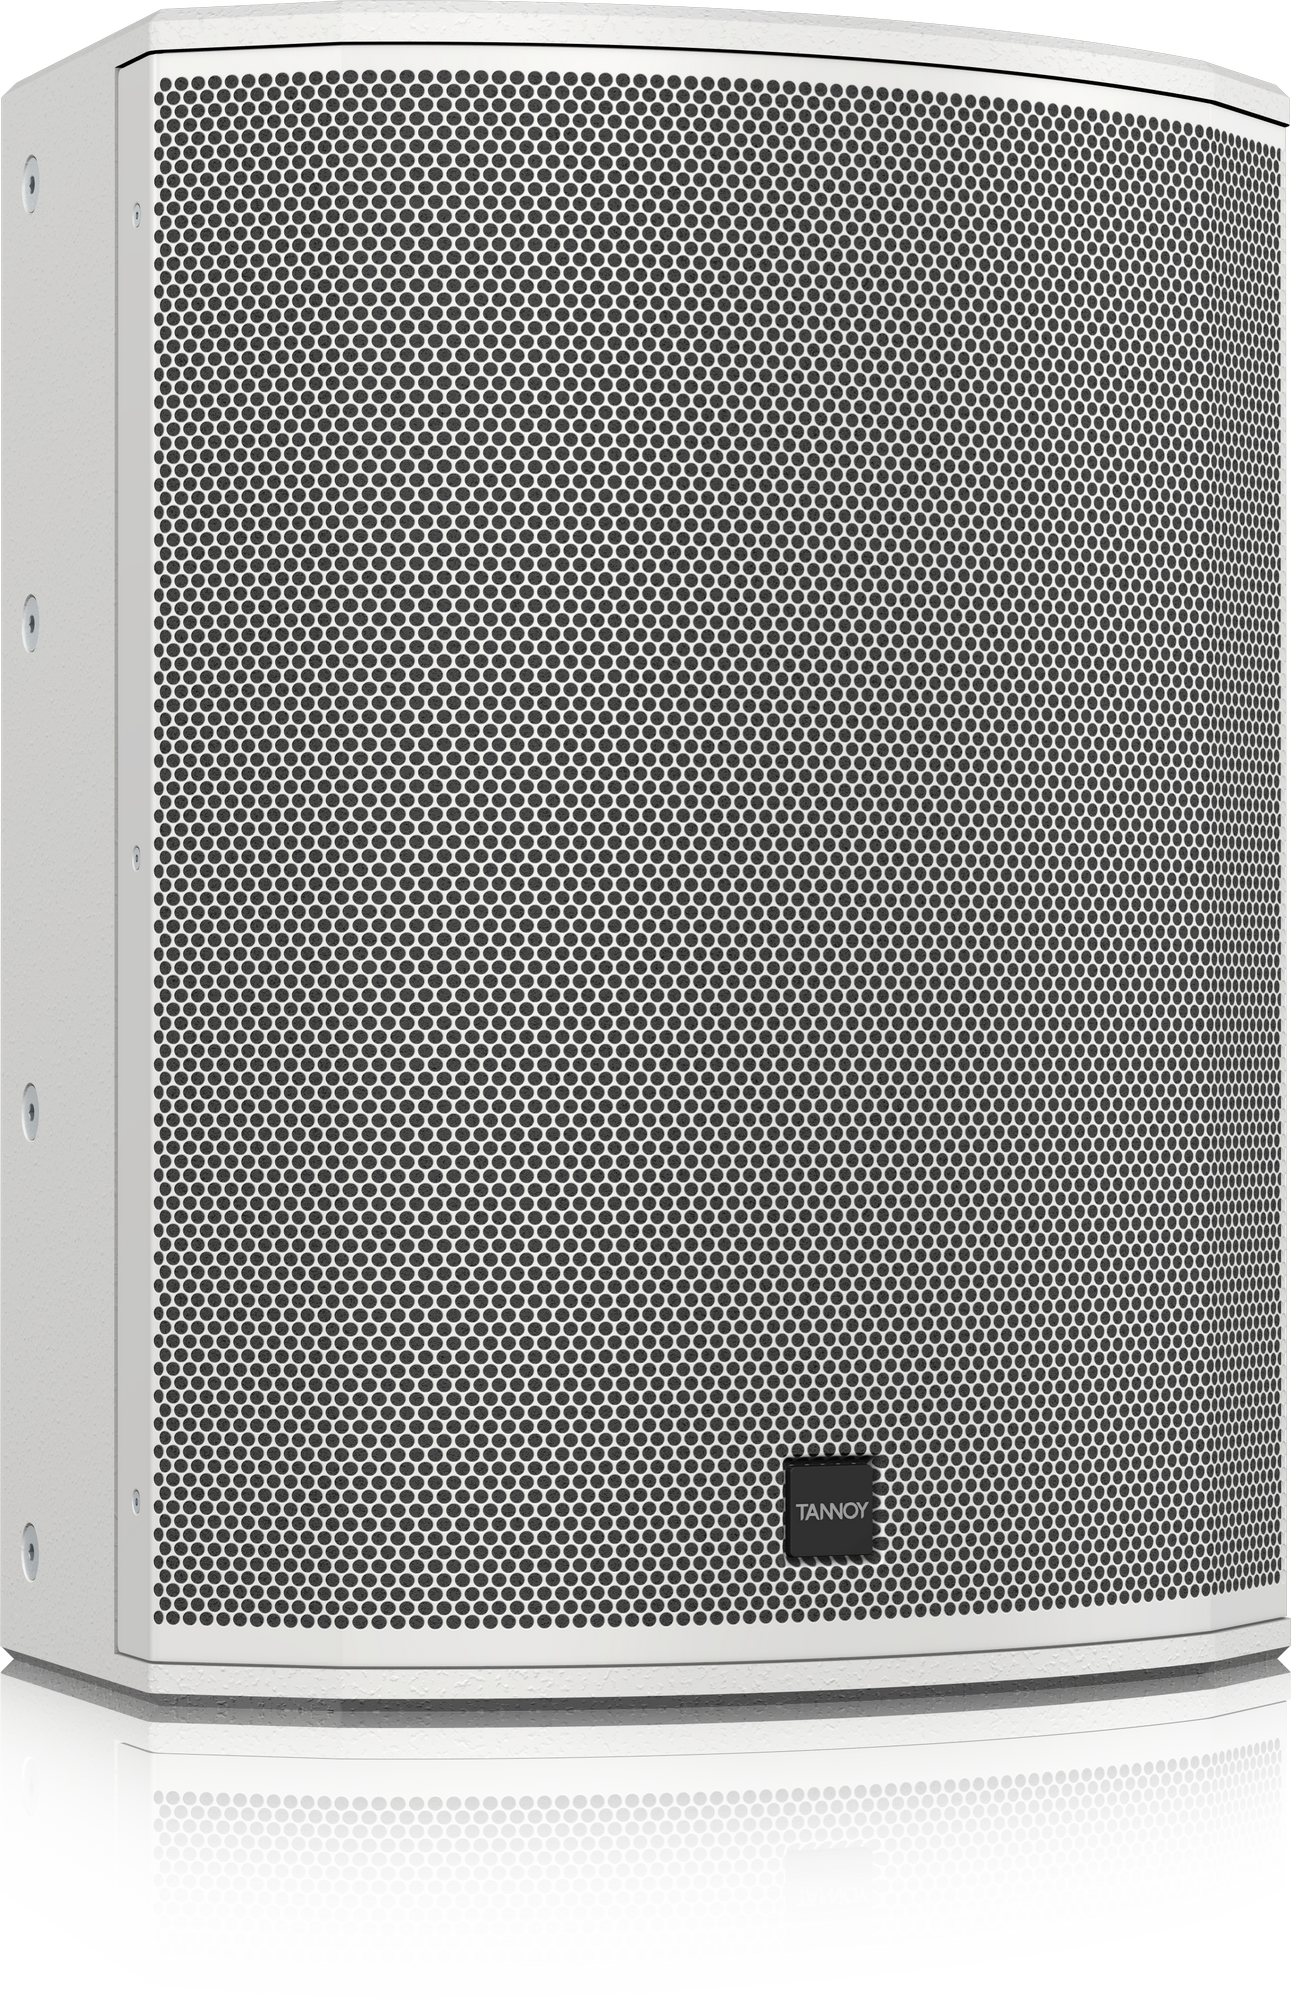 Tannoy  VX 15Q-WH - Install Speakers